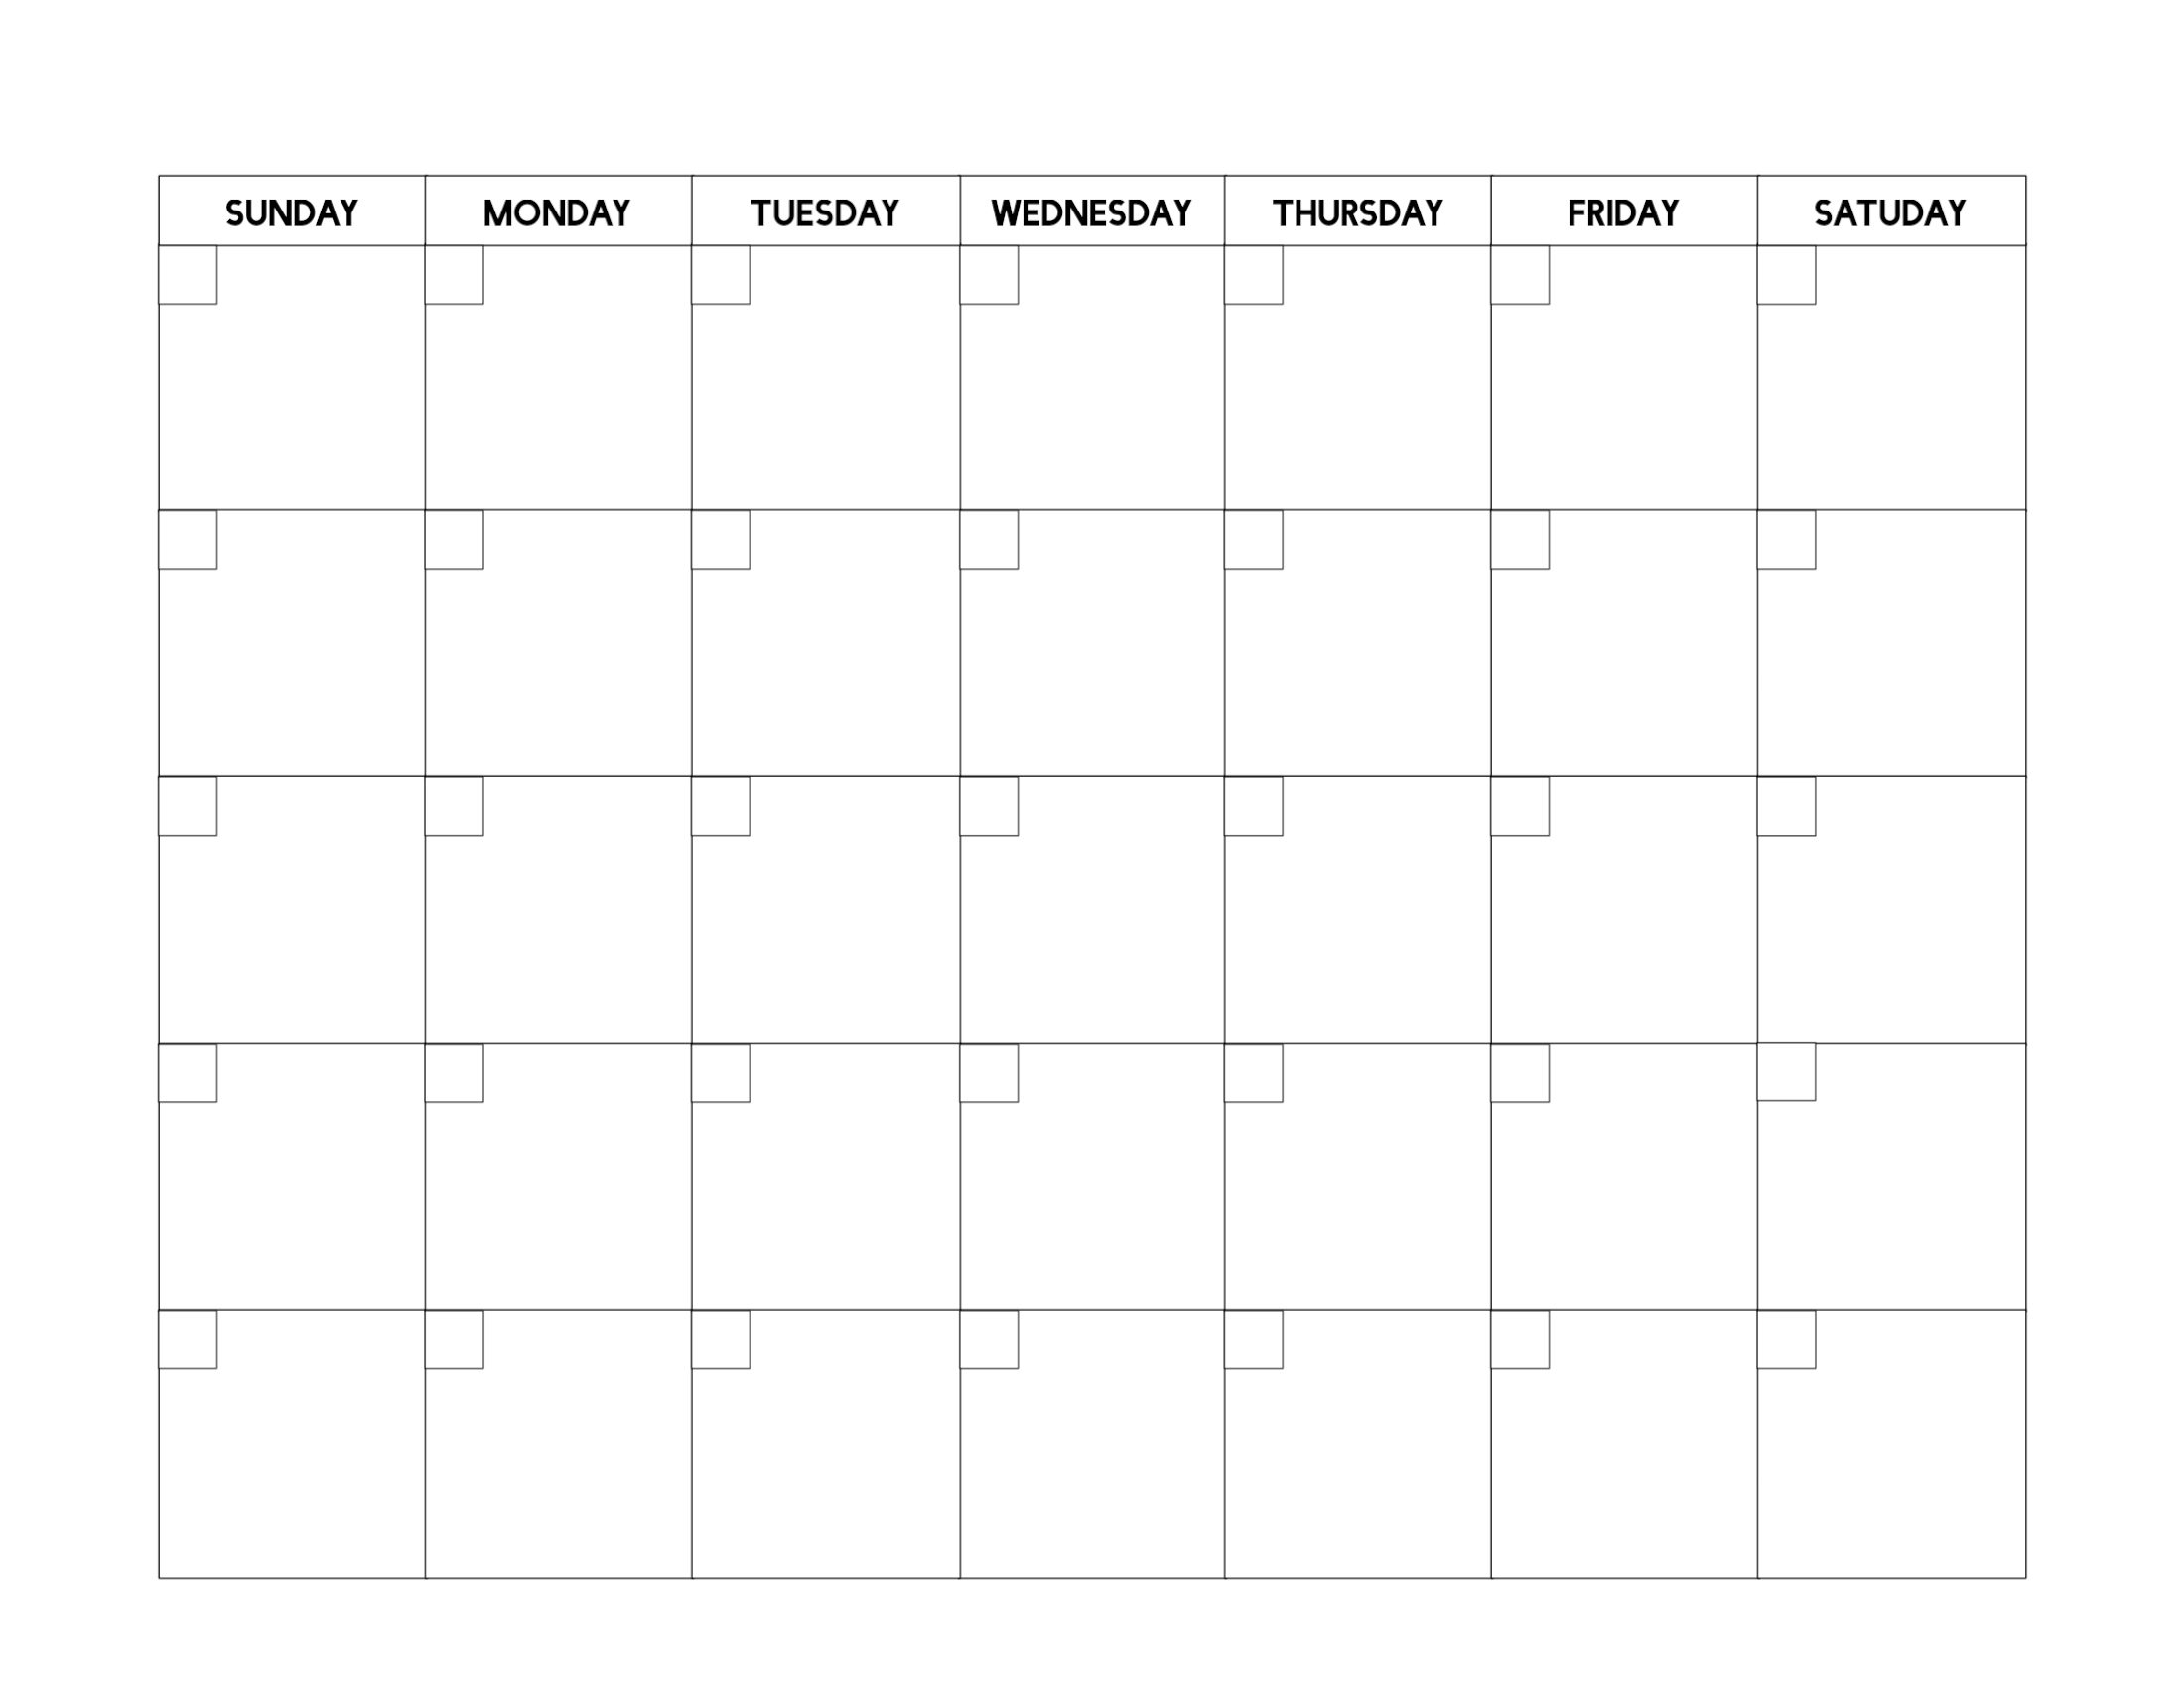 Free pdf calendar 2021 is the well formatted monthly calendar templates to print and … Blank Calendar To Fill In   Example Calendar Printable